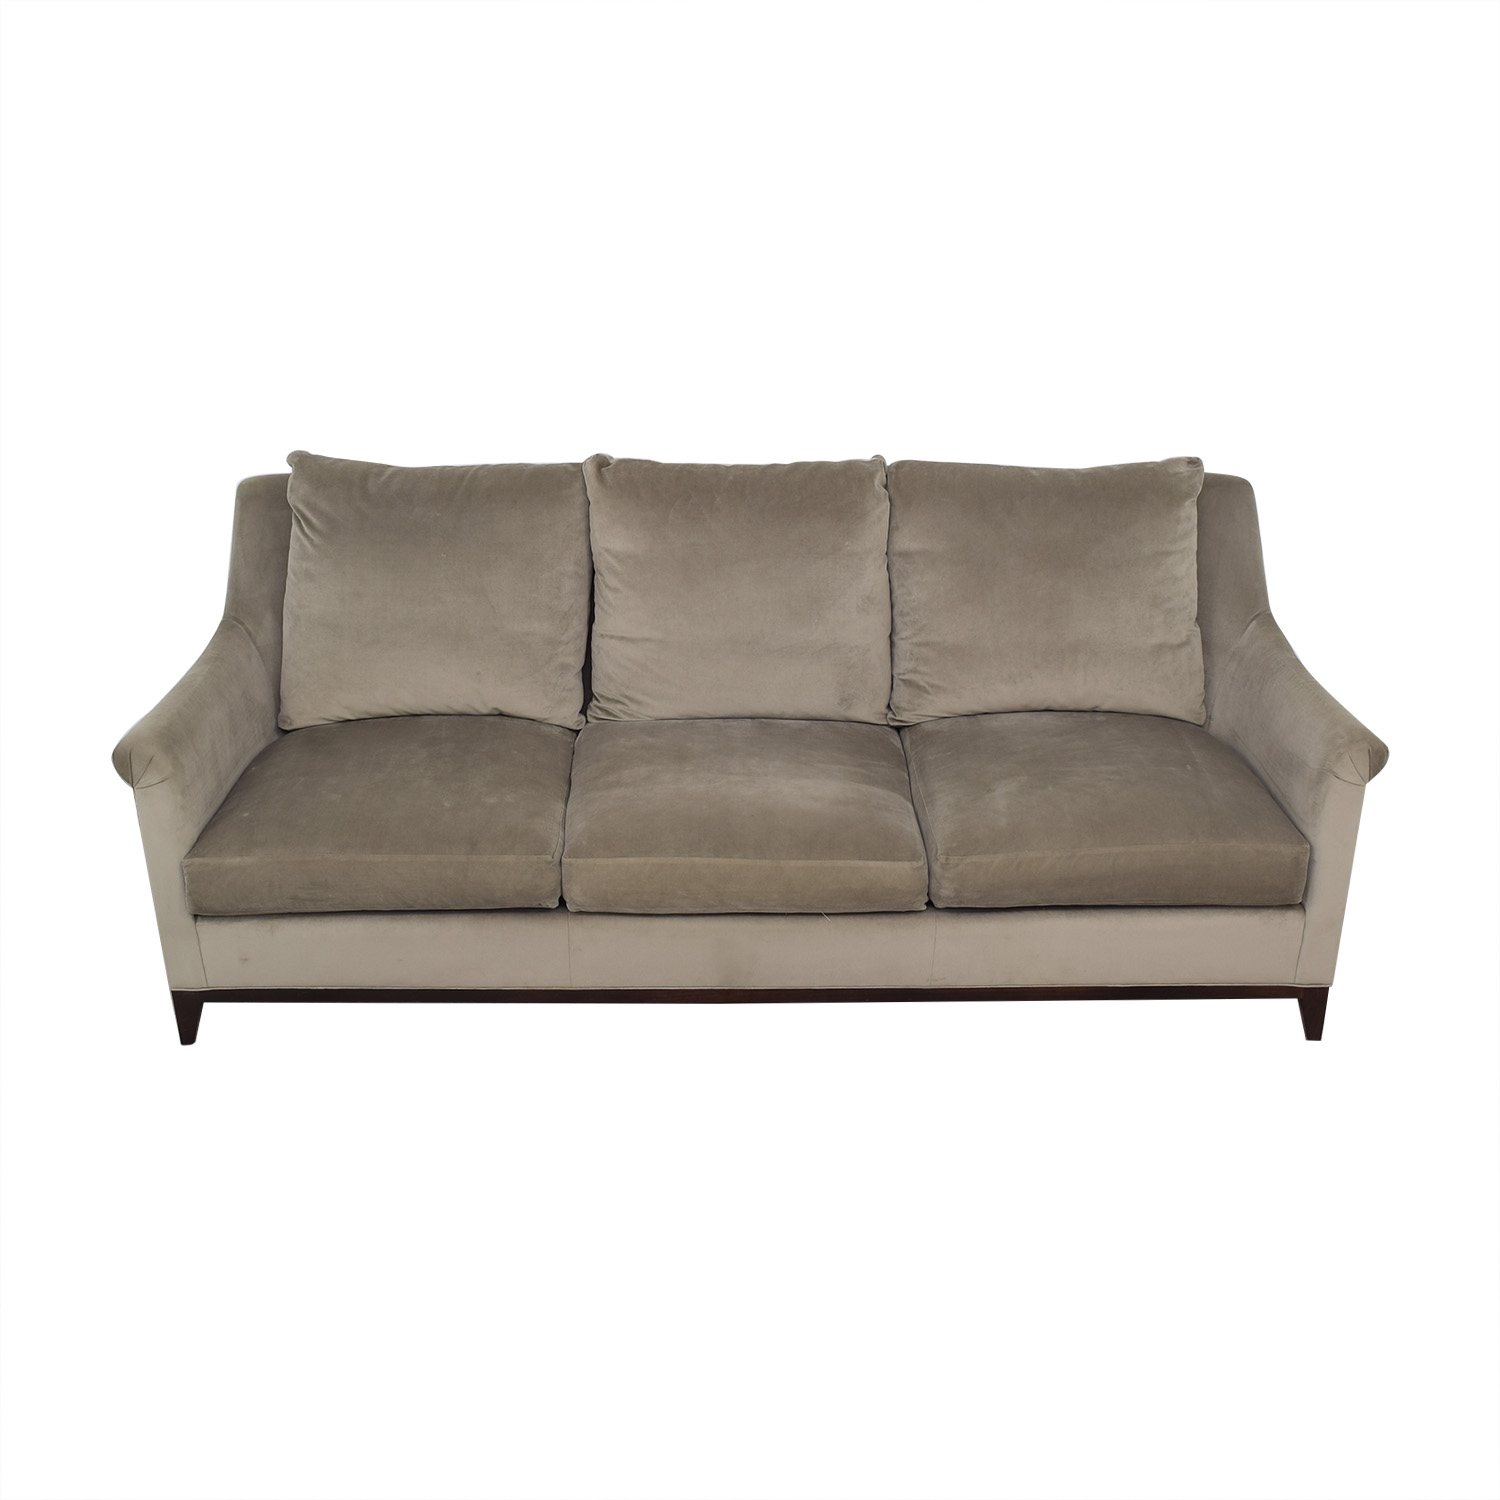 buy Safavieh Roll Arm Velvet Sofa Safavieh Sofas